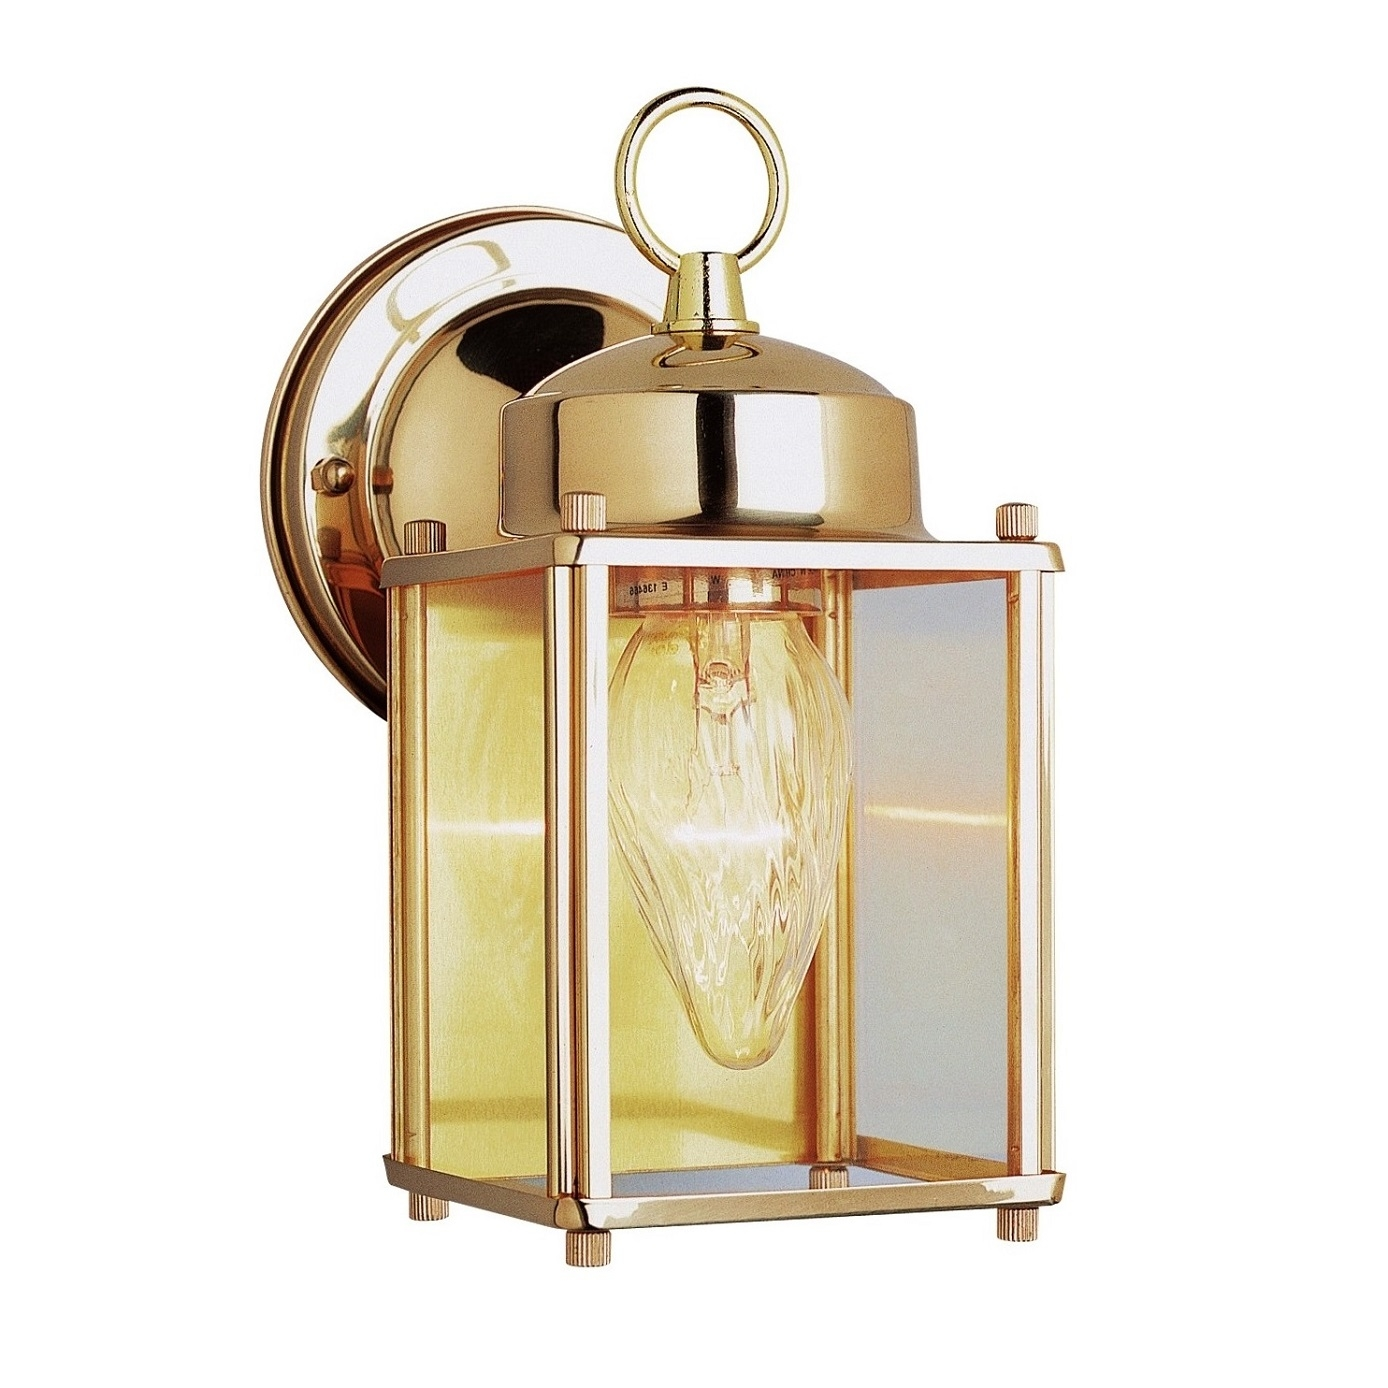 Transglobe lighting outdoor 1 light wall lantern in for Brass outdoor lighting